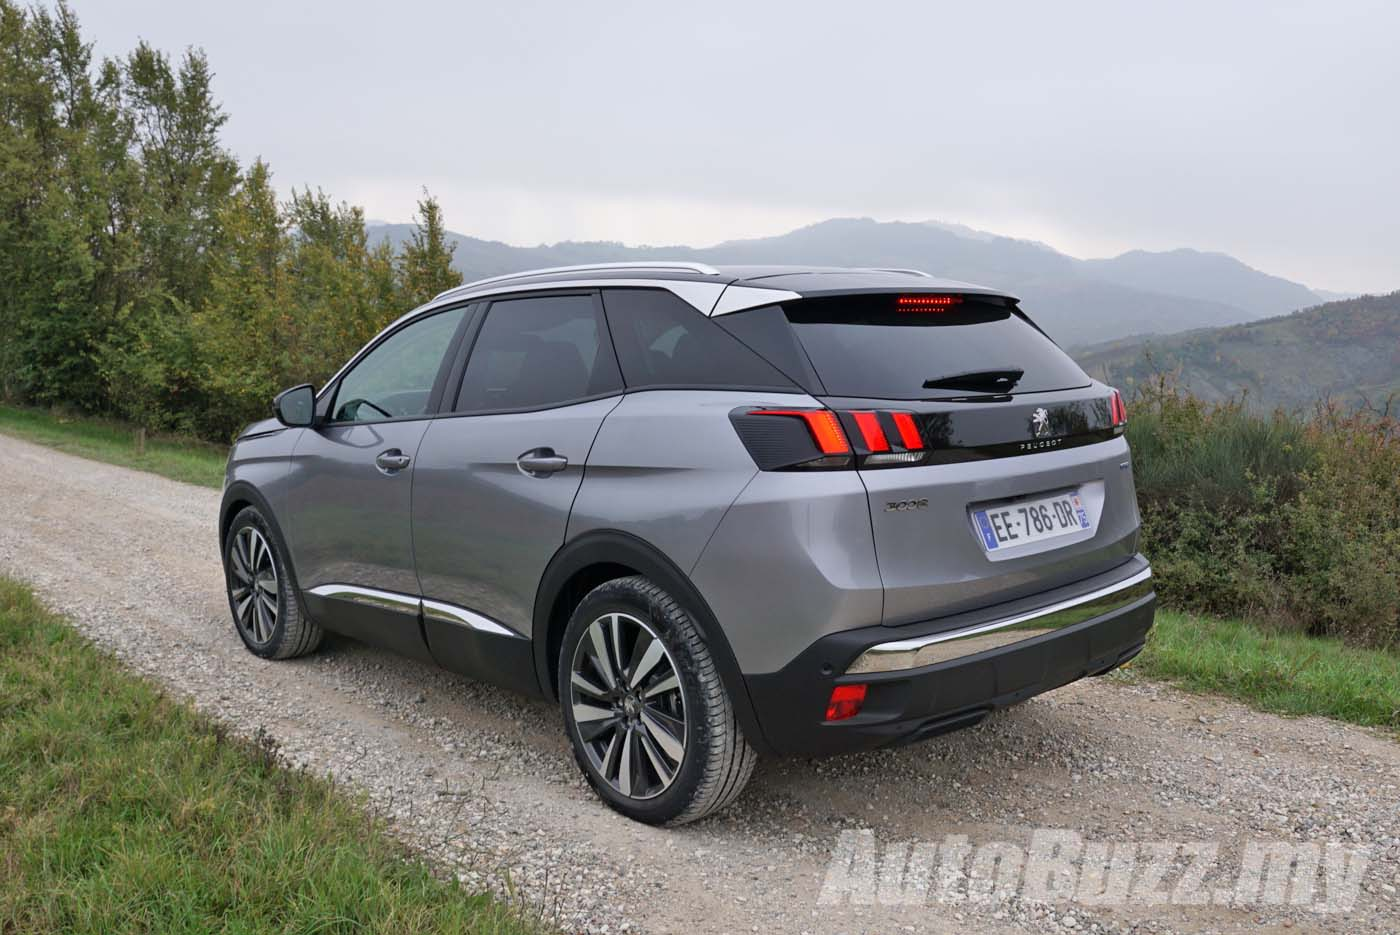 peugeot 3008 plug-in hybrid with 300 hp confirmed for production